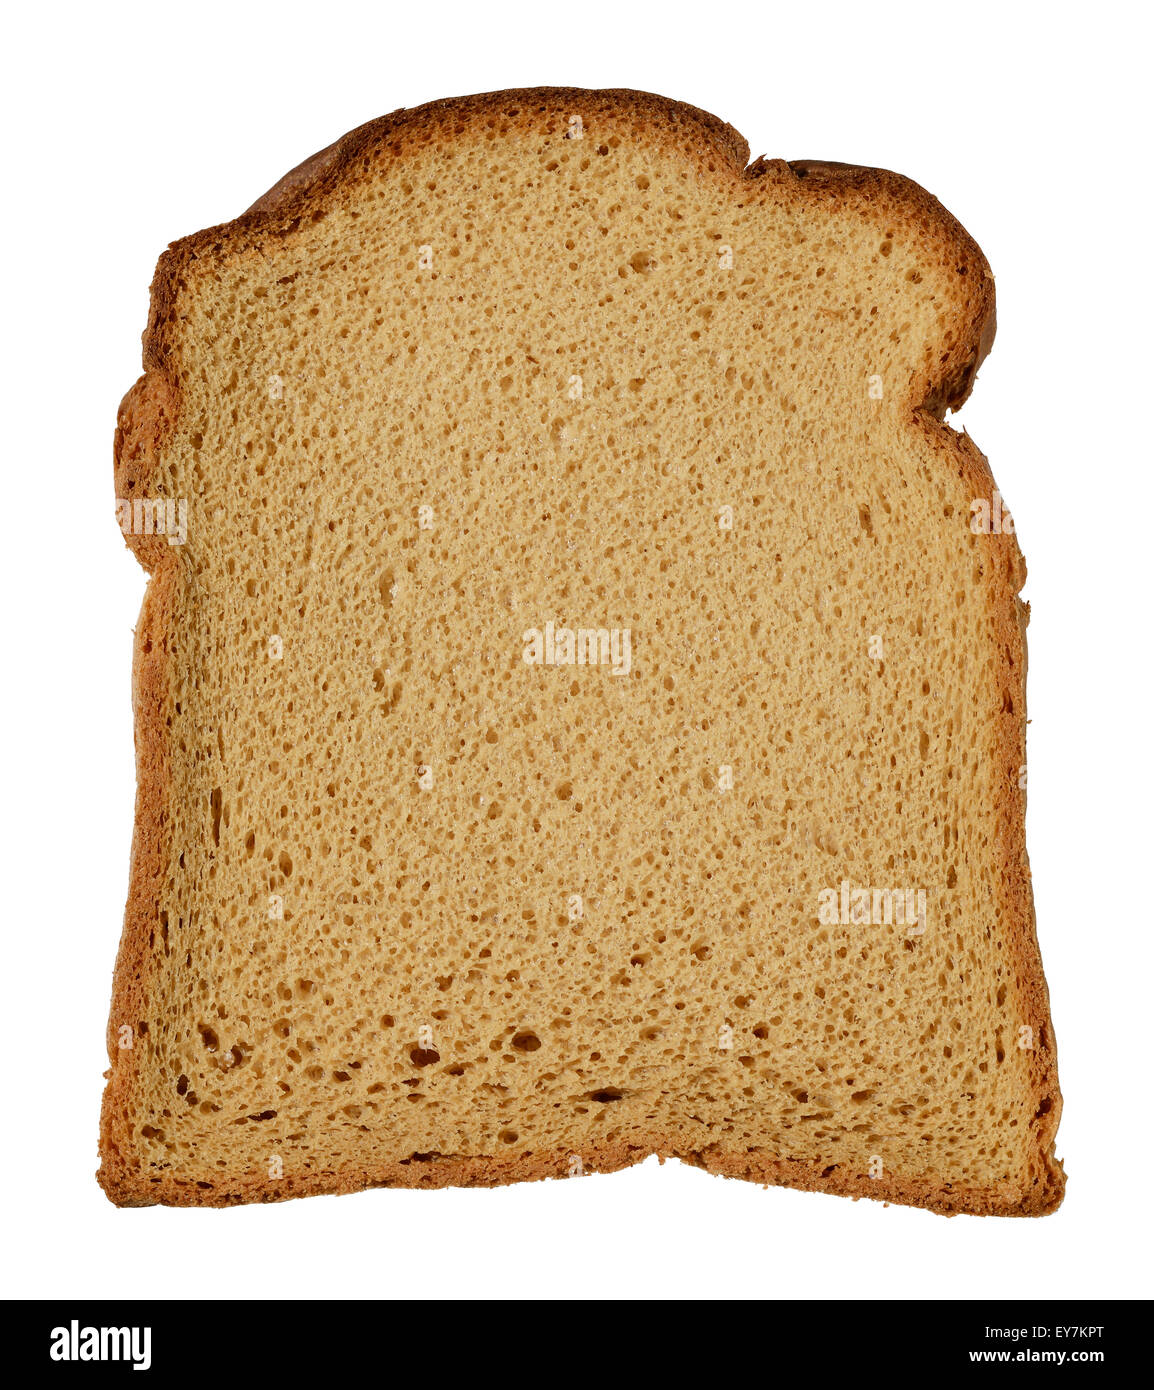 A Slice Of Gluten Free Wheat Free Dairy Free Brown Bread